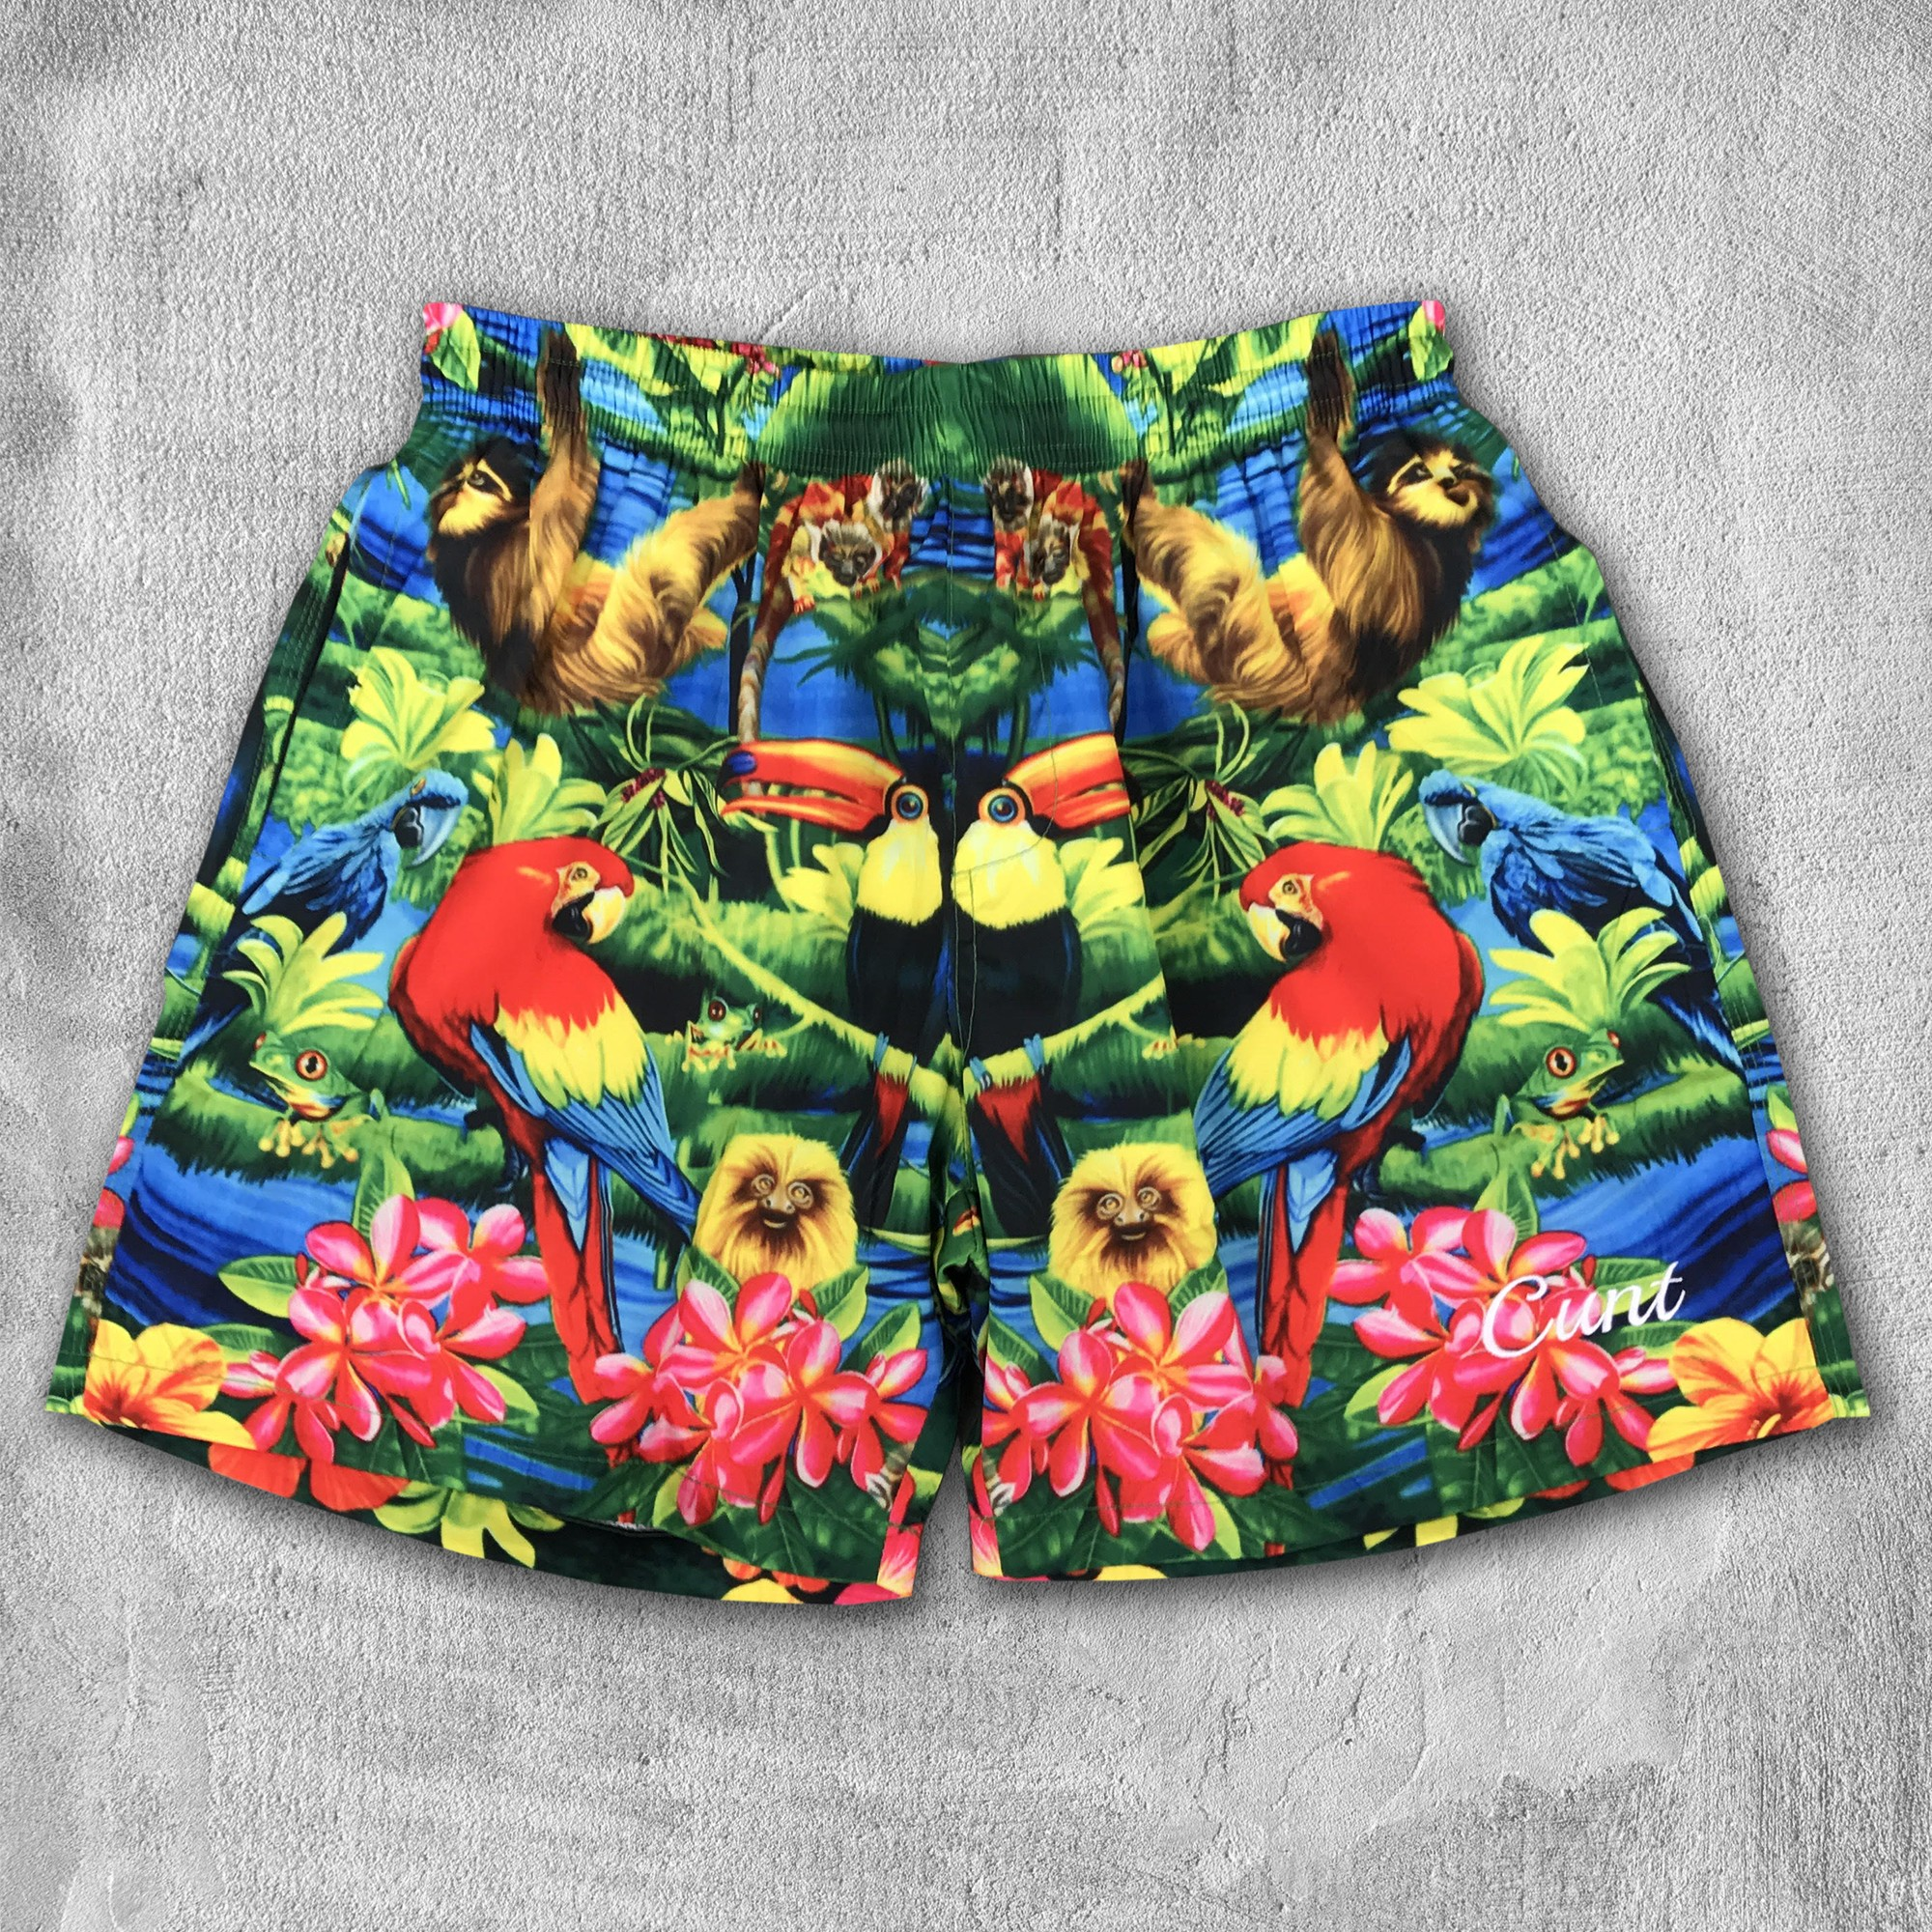 TROPICUNT EMBROIDERED BEACH SHORTS